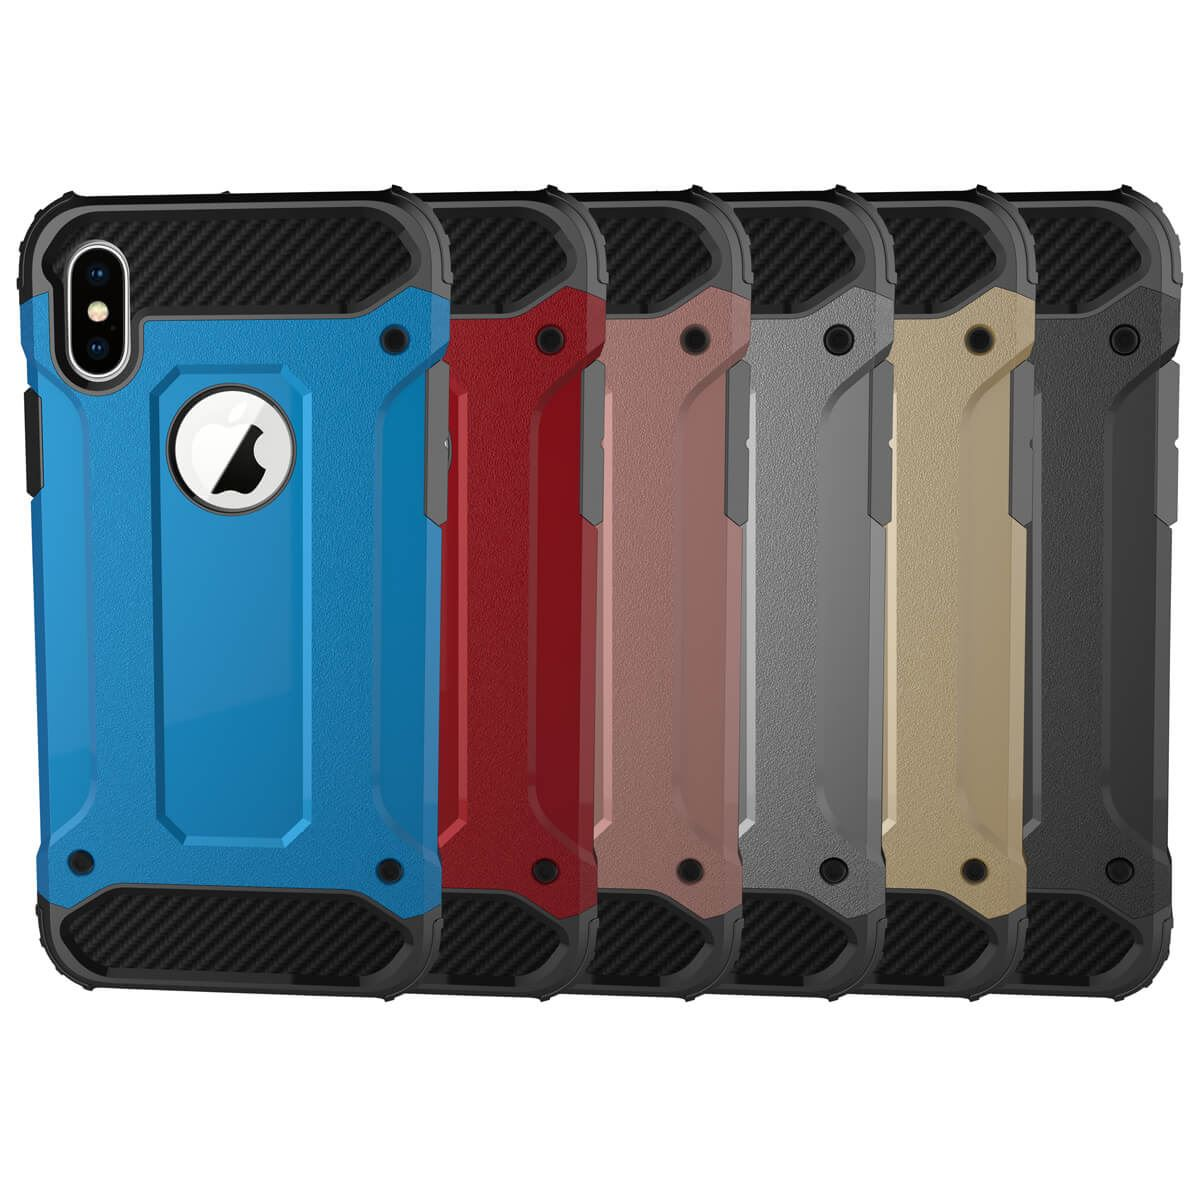 Shockproof-Bumper-Case-For-Apple-iPhone-10-X-8-7-Plus-6s-5s-Hybrid-Armor-Rugged thumbnail 4